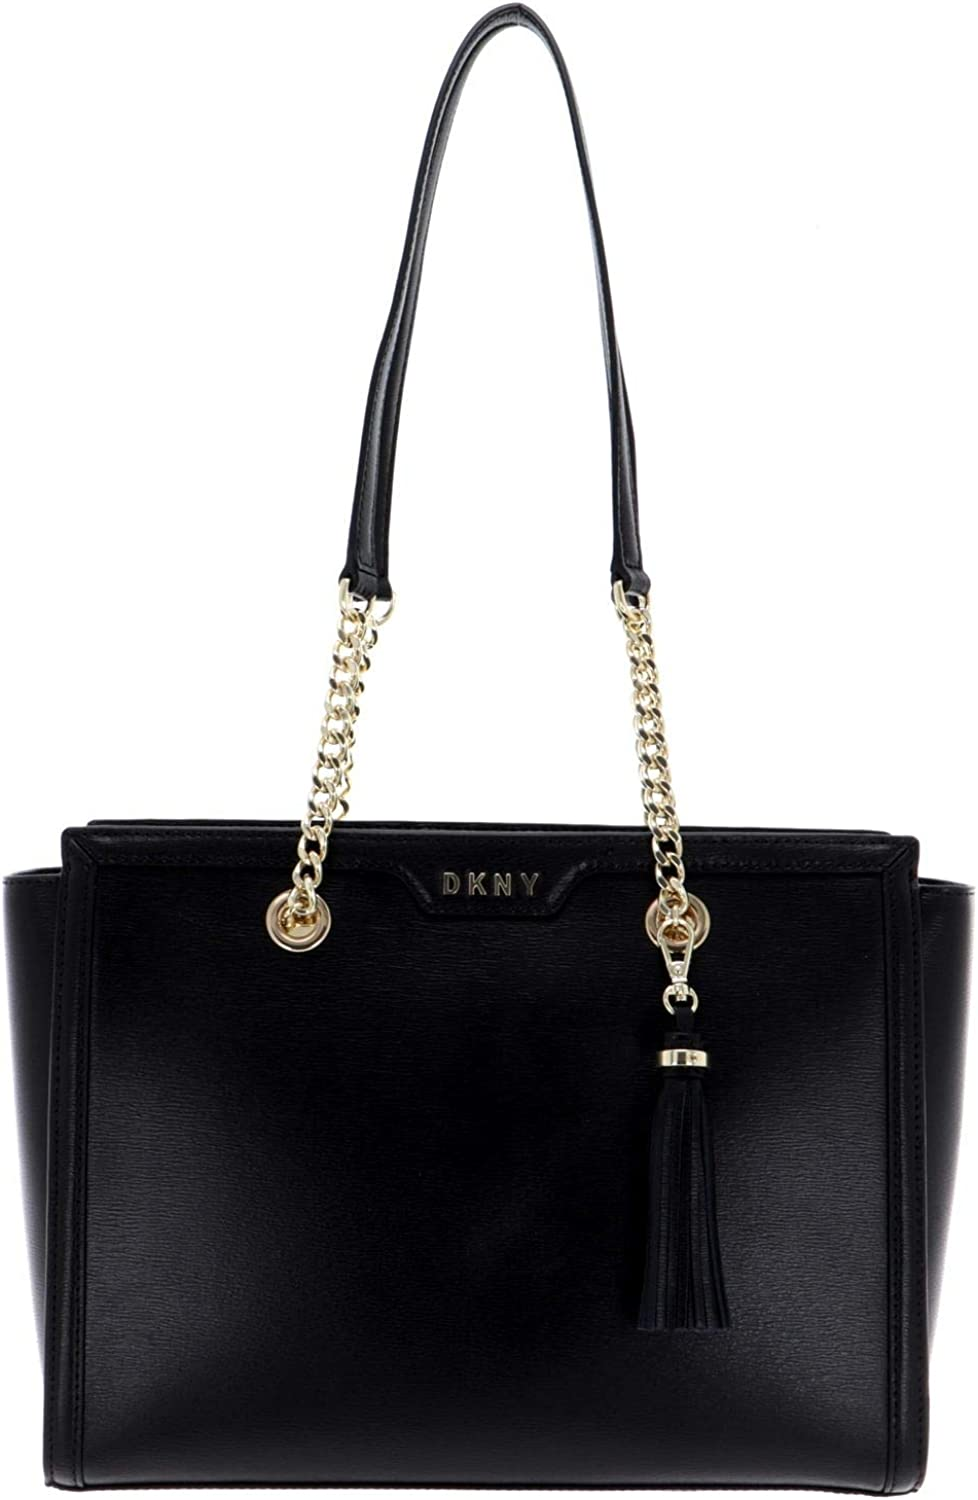 DKNY Polly Tote Blk/Gold